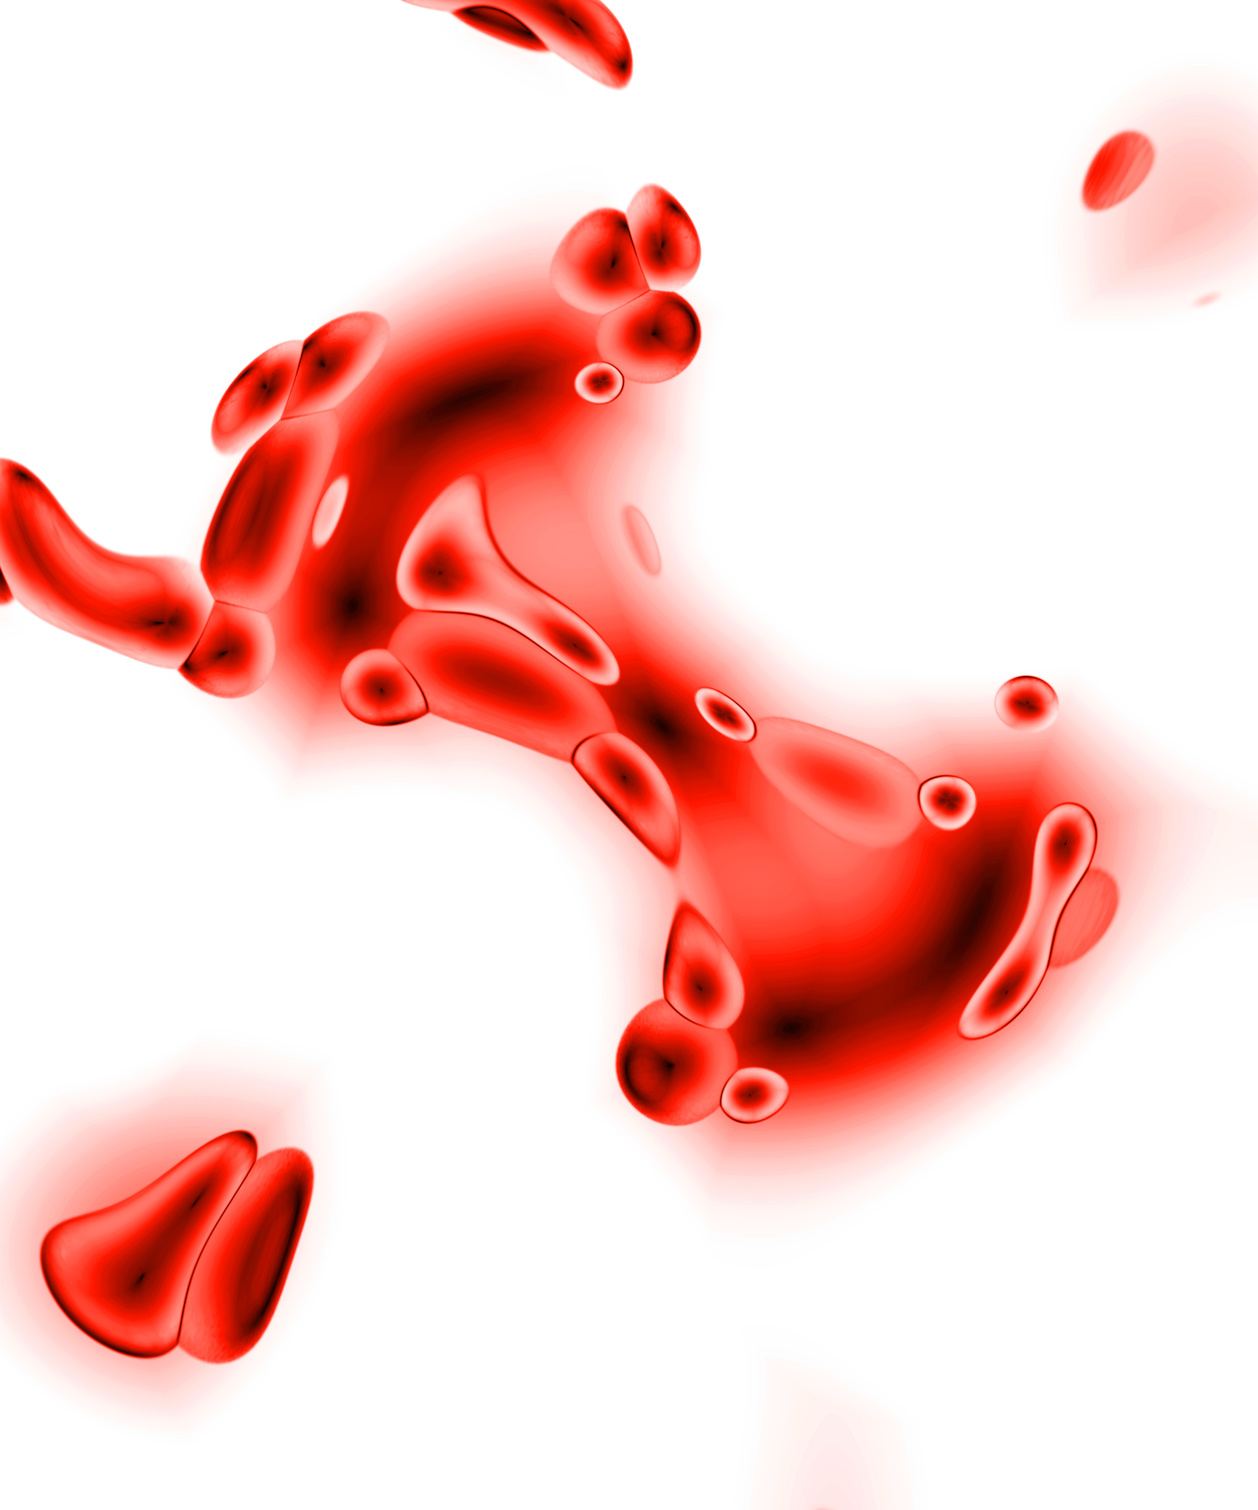 3d rendering of some red blood cells.